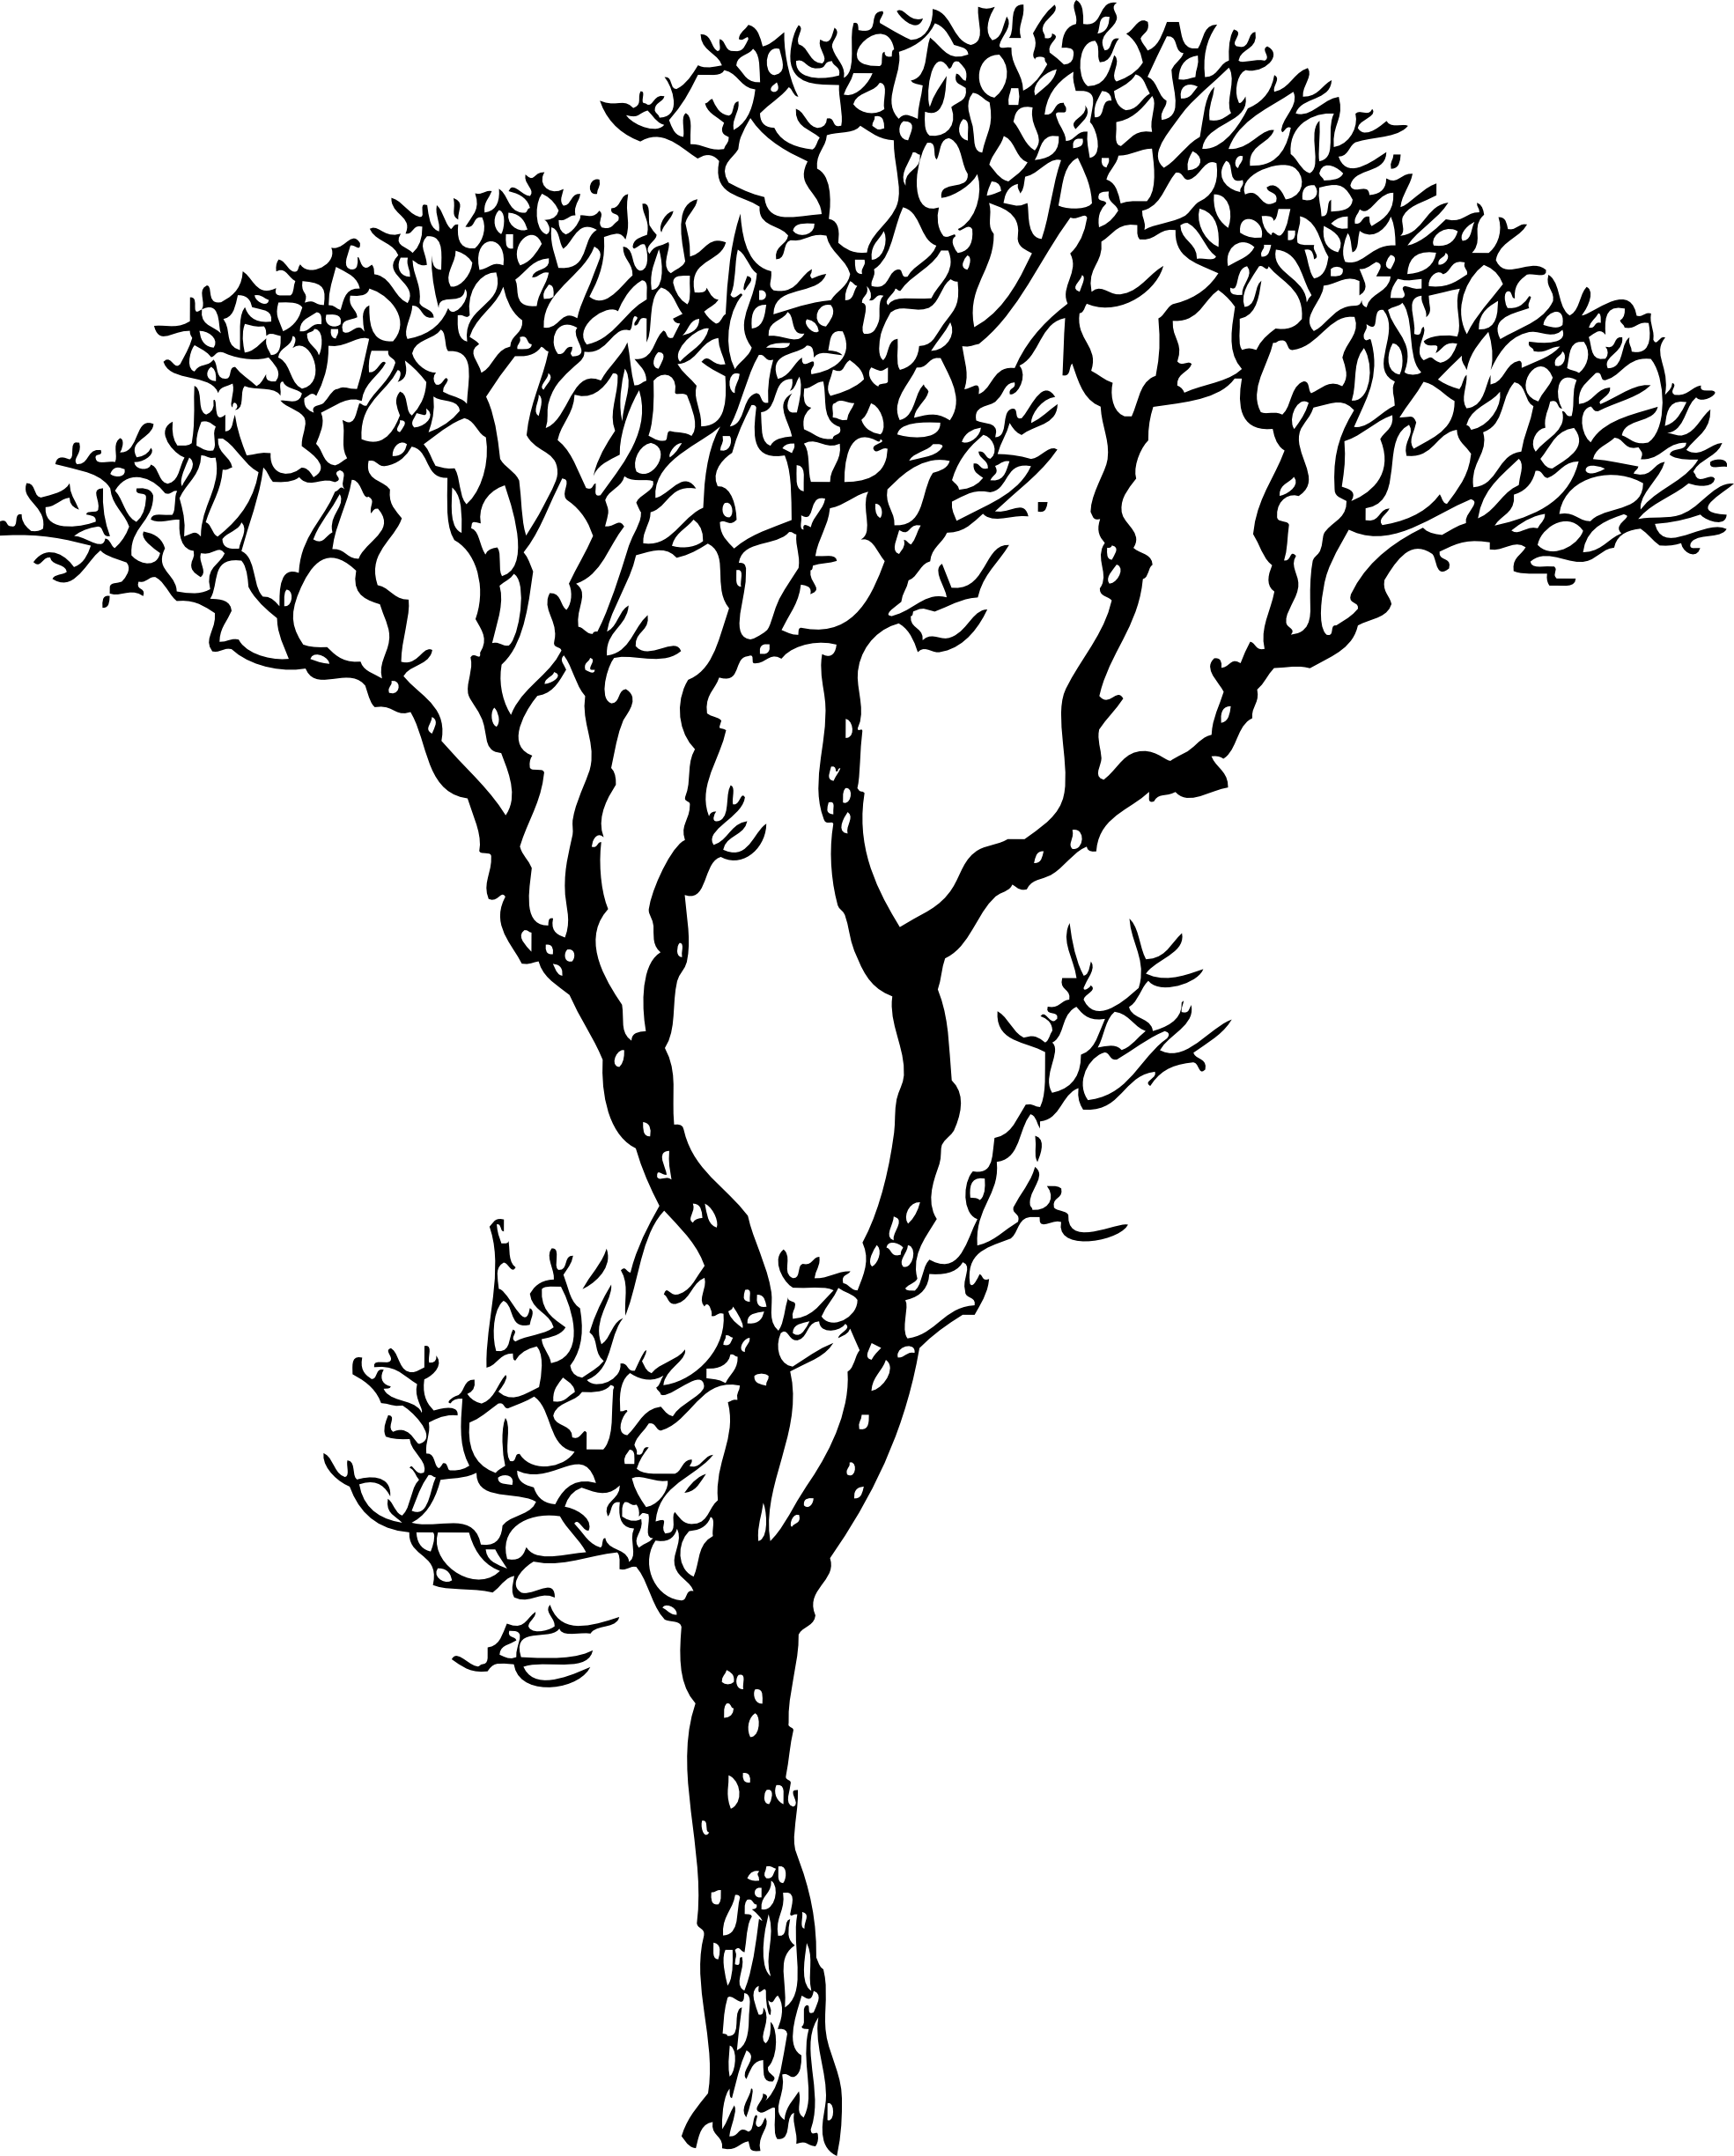 Black and white tree branch clipart image royalty free Bare Tree Black White Line Art Coloring Book Colouring Letters ... image royalty free